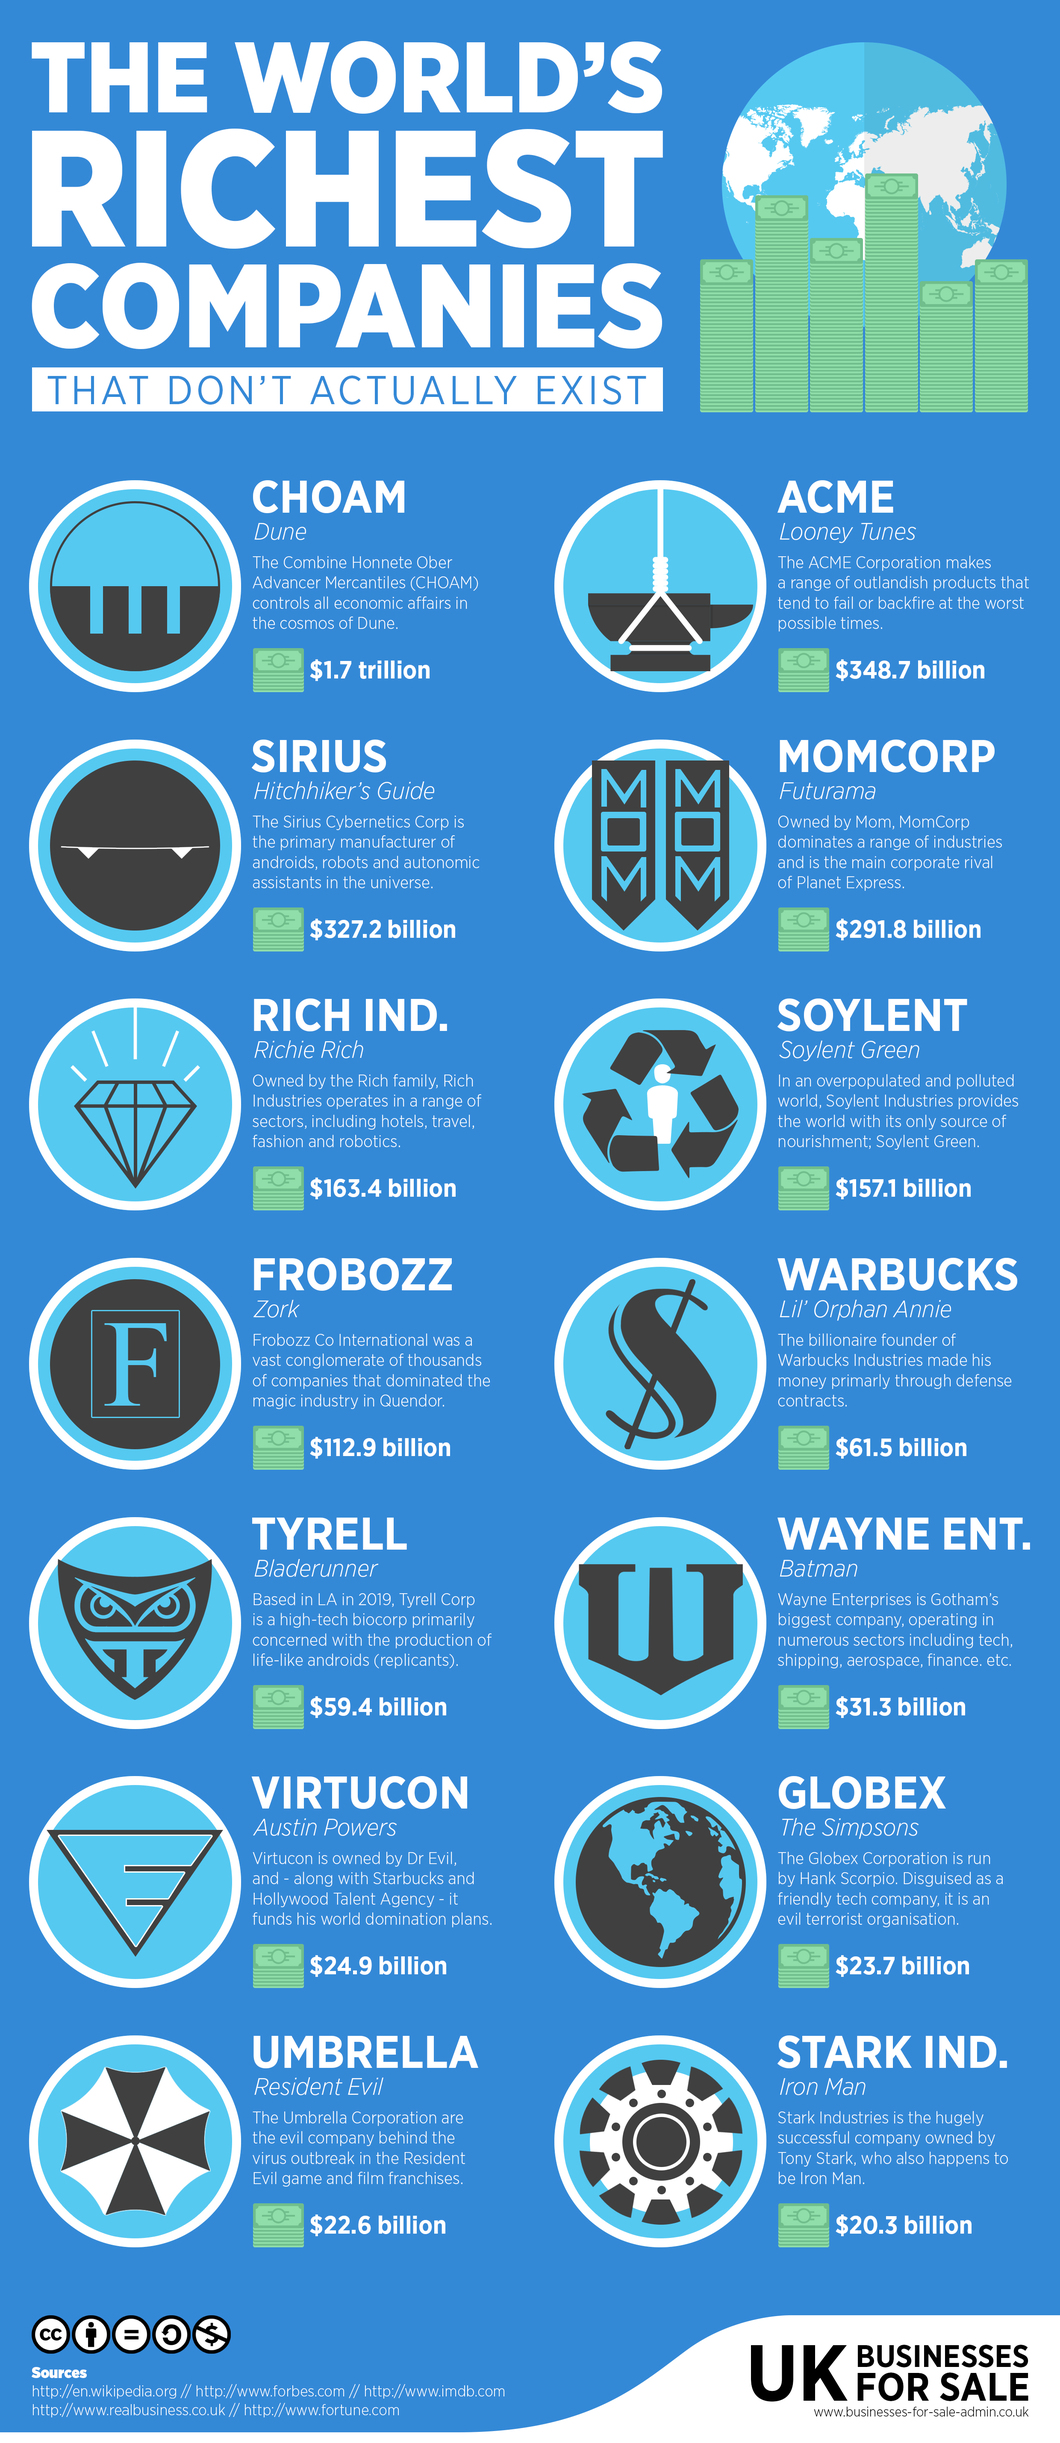 The World's Richest Companies That Don't Actually Exist